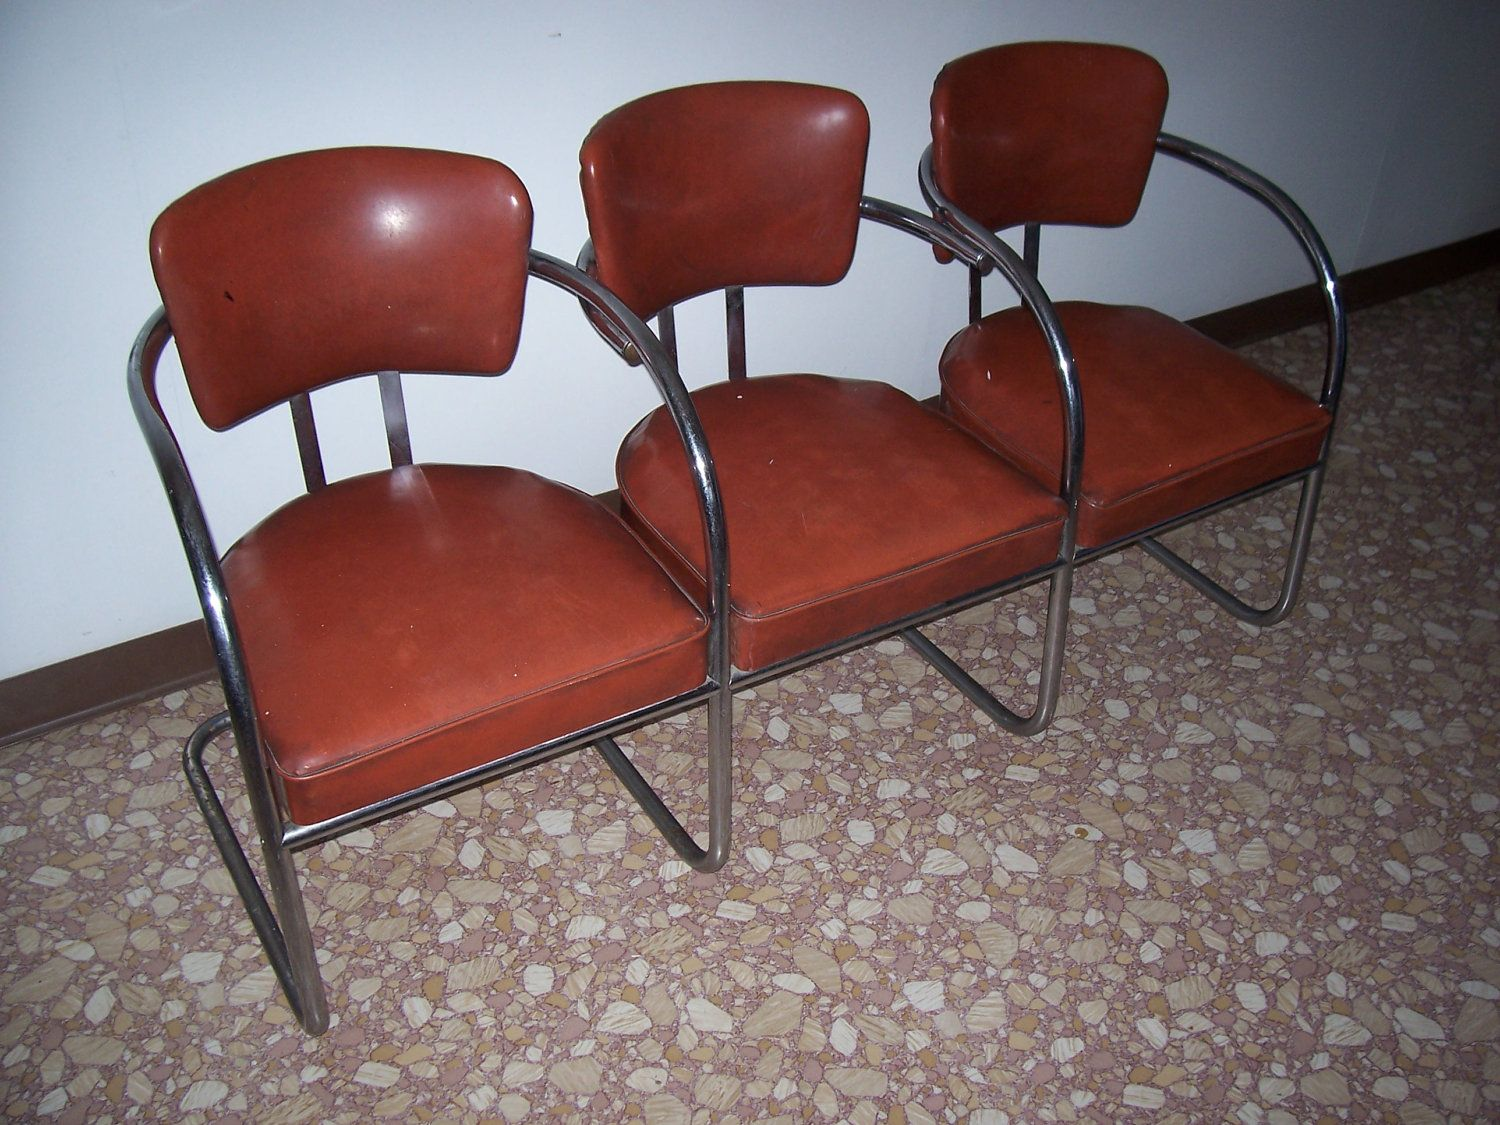 Vintage Set Of Waiting Room Chrome Metal Tubular Chairs 1950s Barber Shop Style 100 00 Vi Fabric Dining Chairs Barber Chair Vintage Swivel Chair Living Room